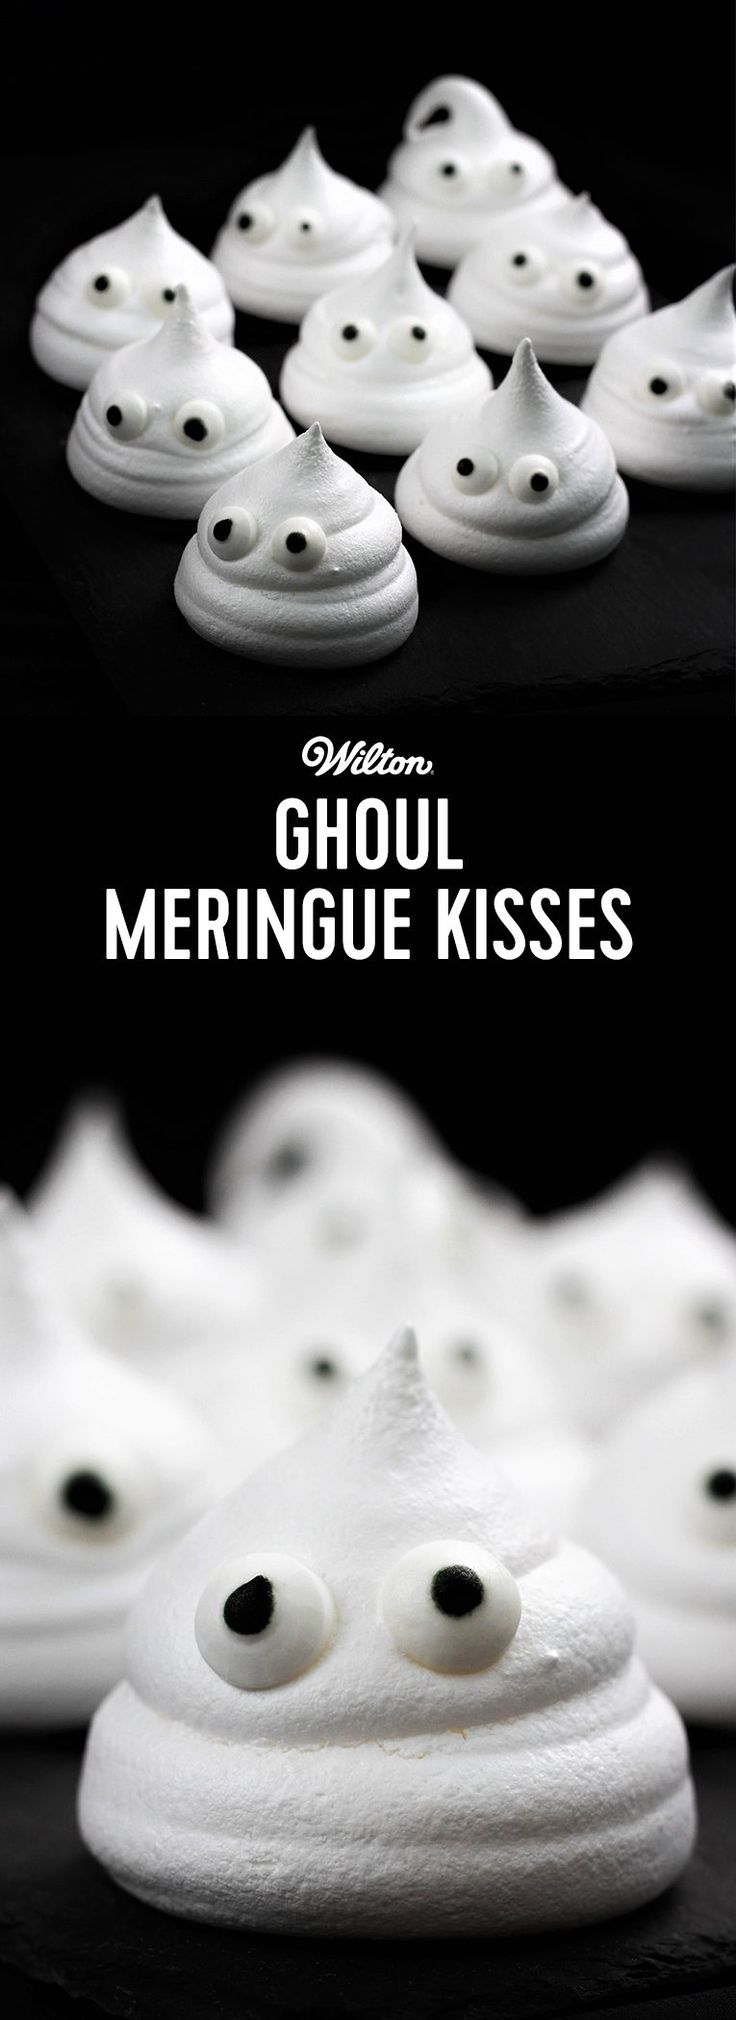 Ghoul Meringue Kisses - Use these tasty ghouls to decorate a layer cake with or bag up in some scary packaging to give away as Trick or Treats. Use tip number 12 to pipe the meringues and attach Wilton candy eyes. These yummy treats are super easy to make and delicious to eat.